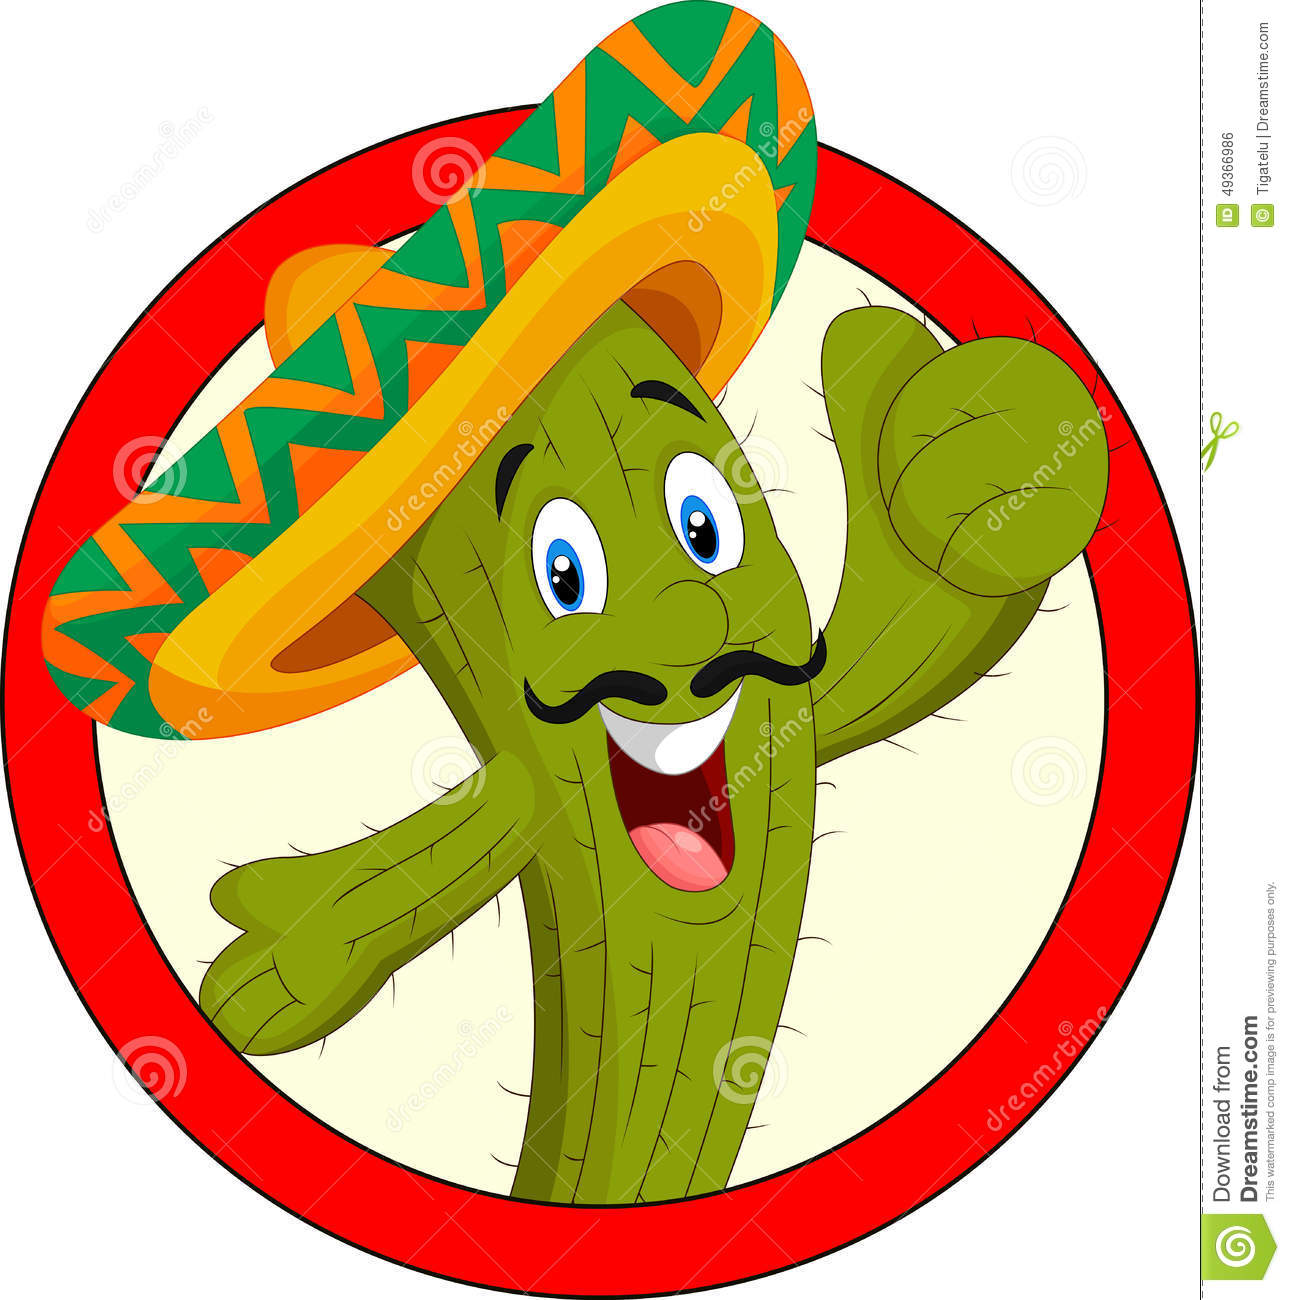 Cartoon Cactus Character Stock Vector - Image: 49366986